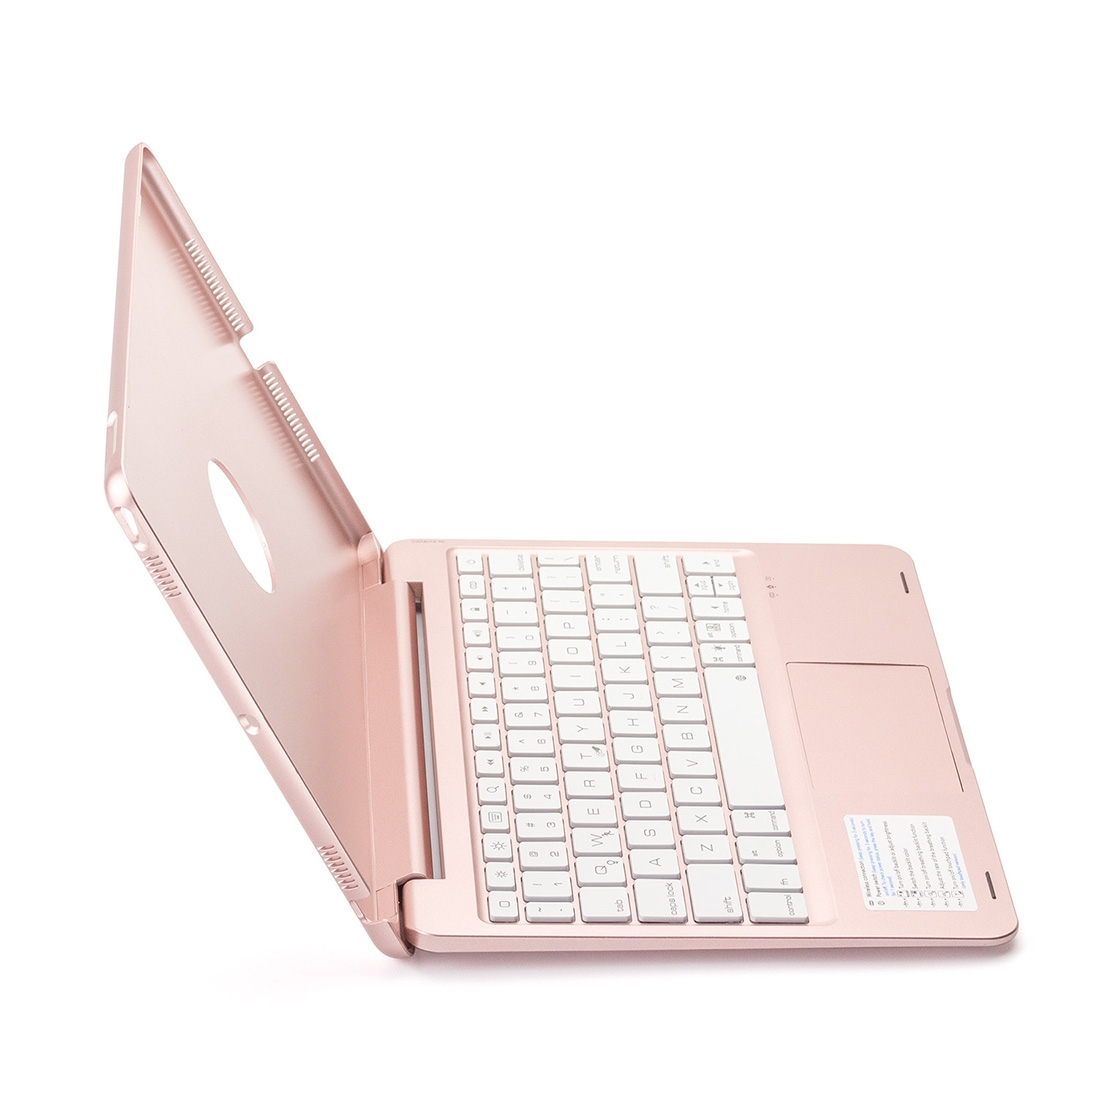 iPad Case With Keyboard For iPad, Air 2, Air 1, Pro 9.7, With Bluetooth & Touchpad